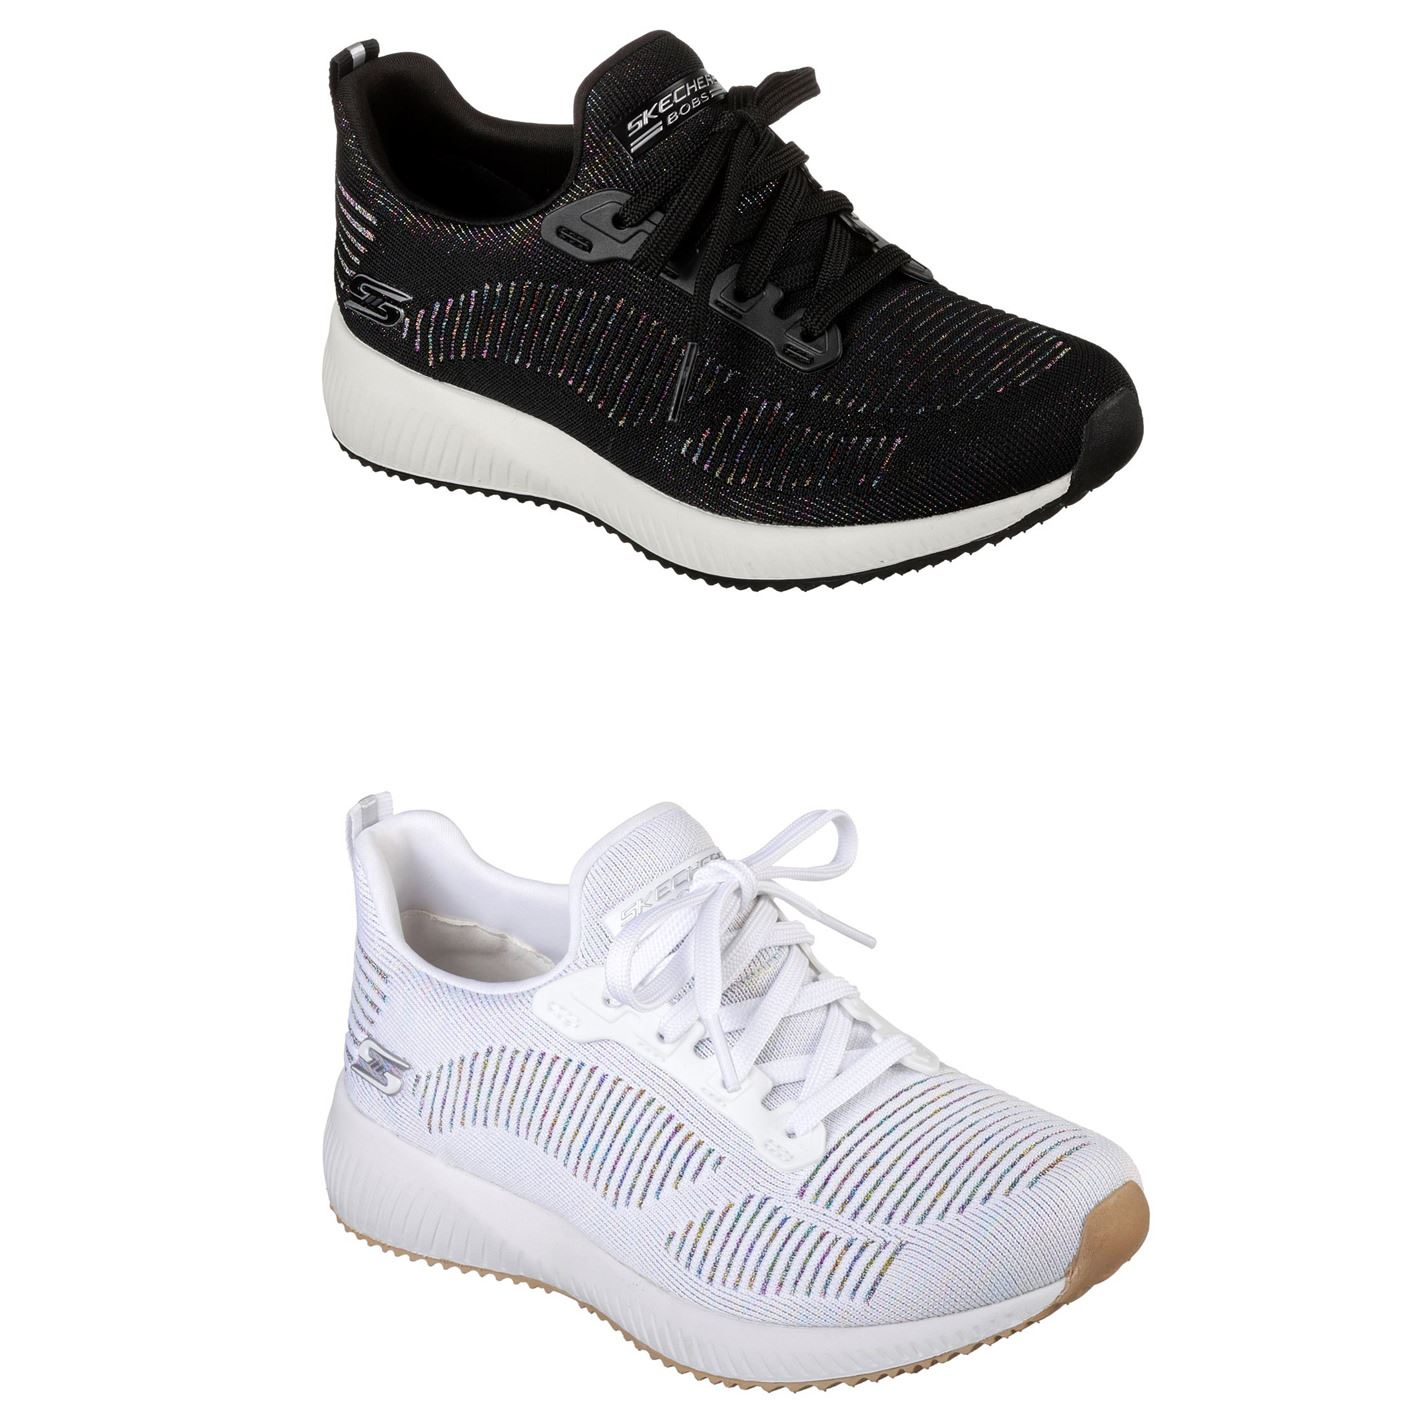 d8fea85c4d991 ... Skechers Bobs Sport Squad Metallic Trainers Ladies Shoes Womens  Footwear ...